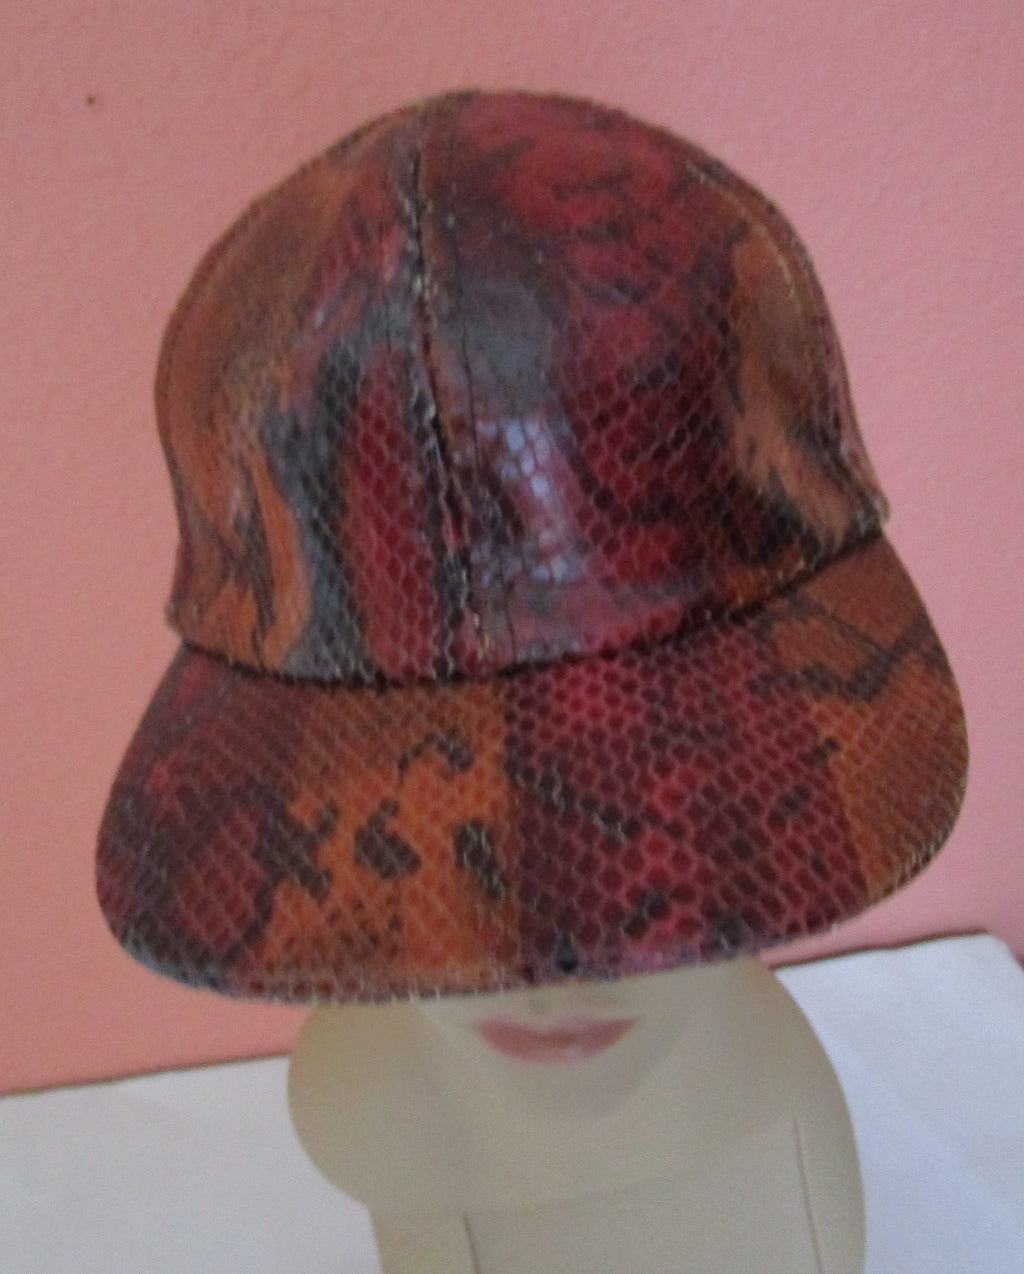 Kokin Python Snake Leather Visor Cap Hat Adjustable Baseball Brown Burgundy Black